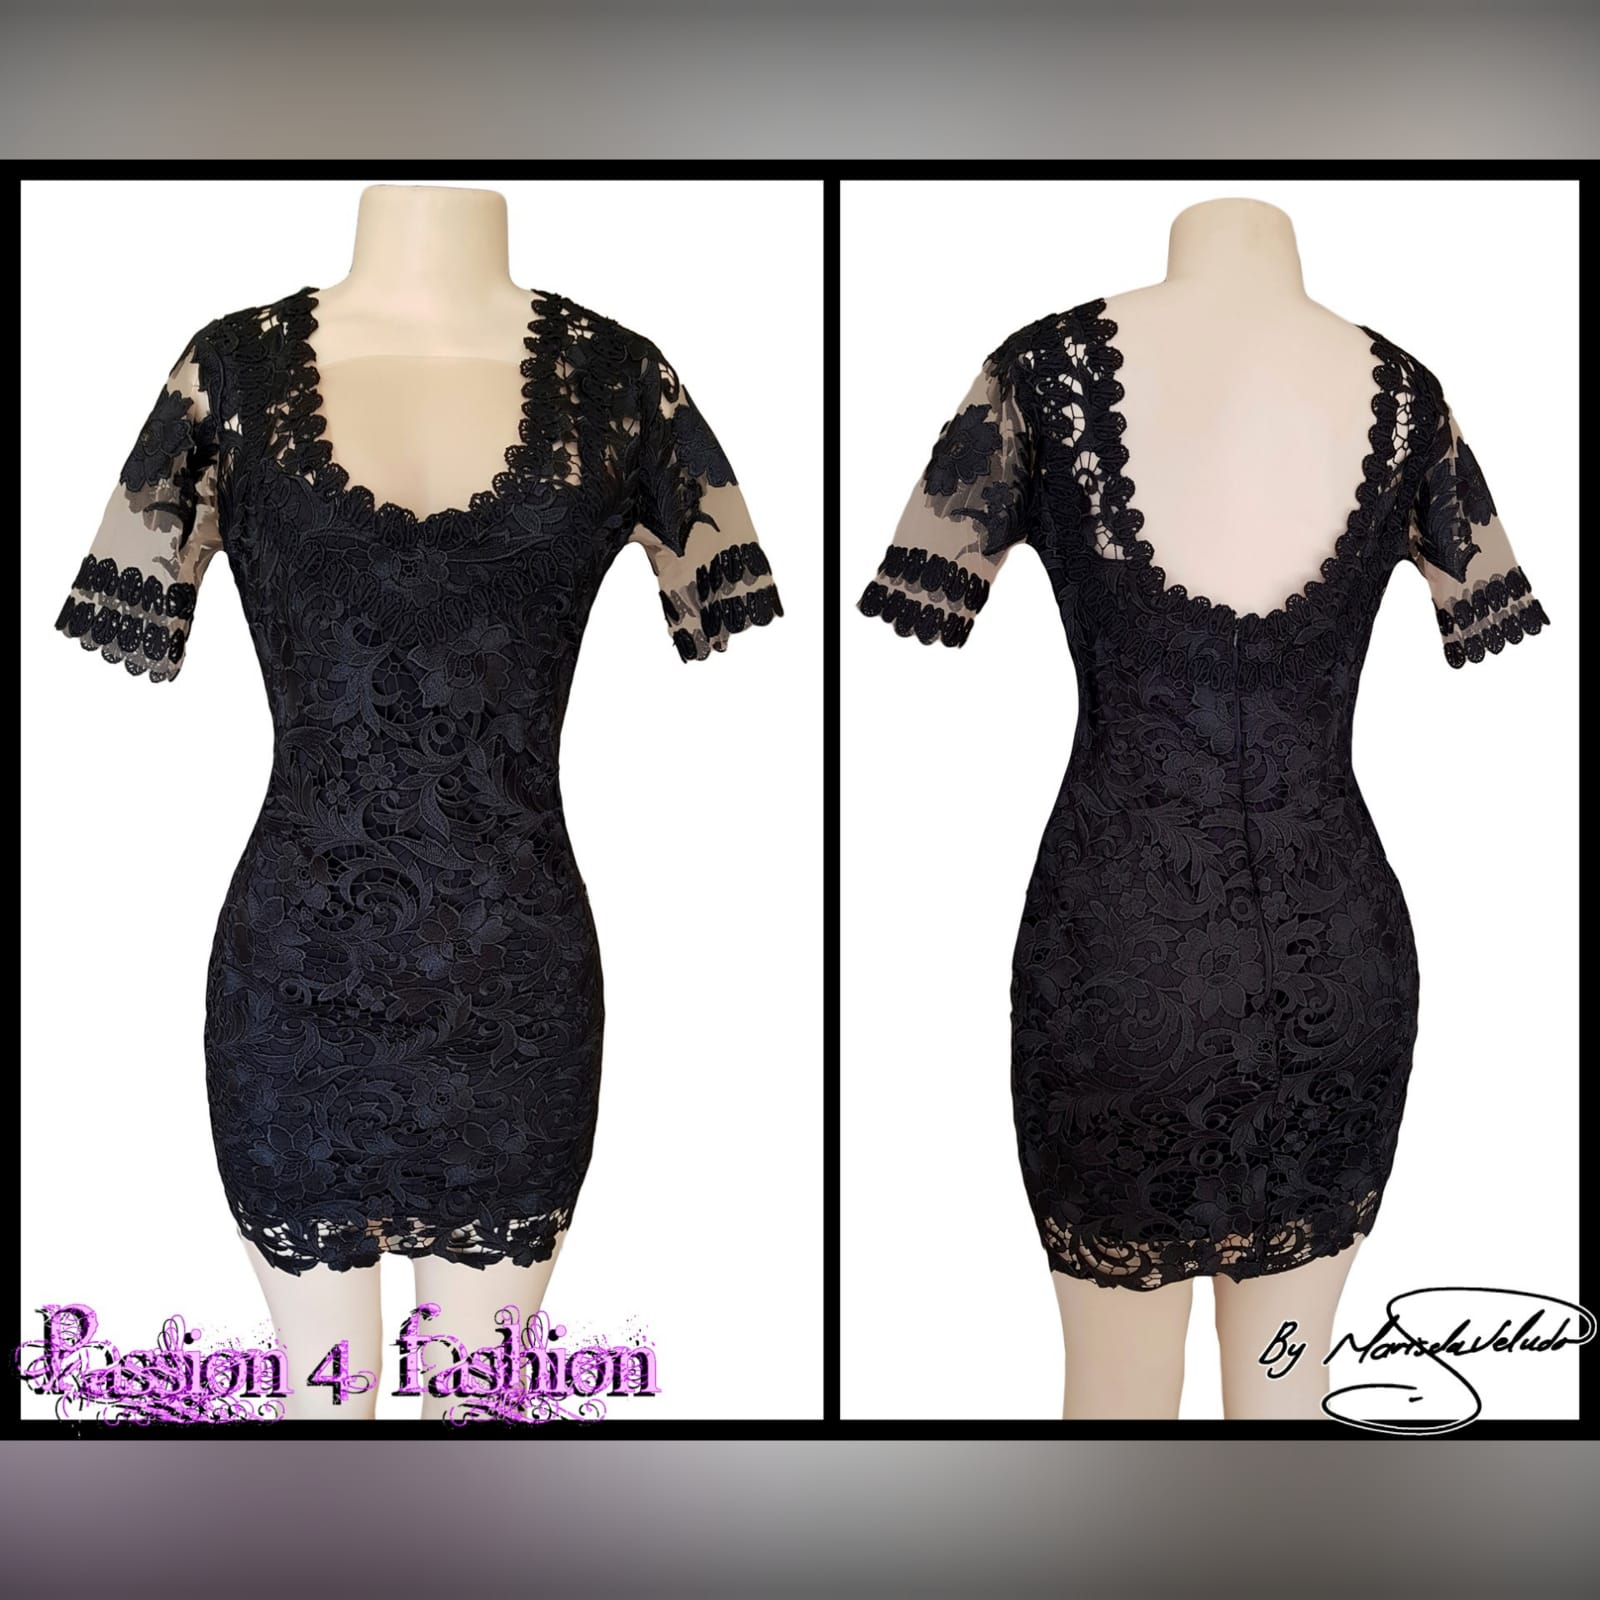 Black short guipure lace evening dress 4 black short guipure lace evening dress with a rounded front and back neckline. With sheers short sleeves detailed with lace.